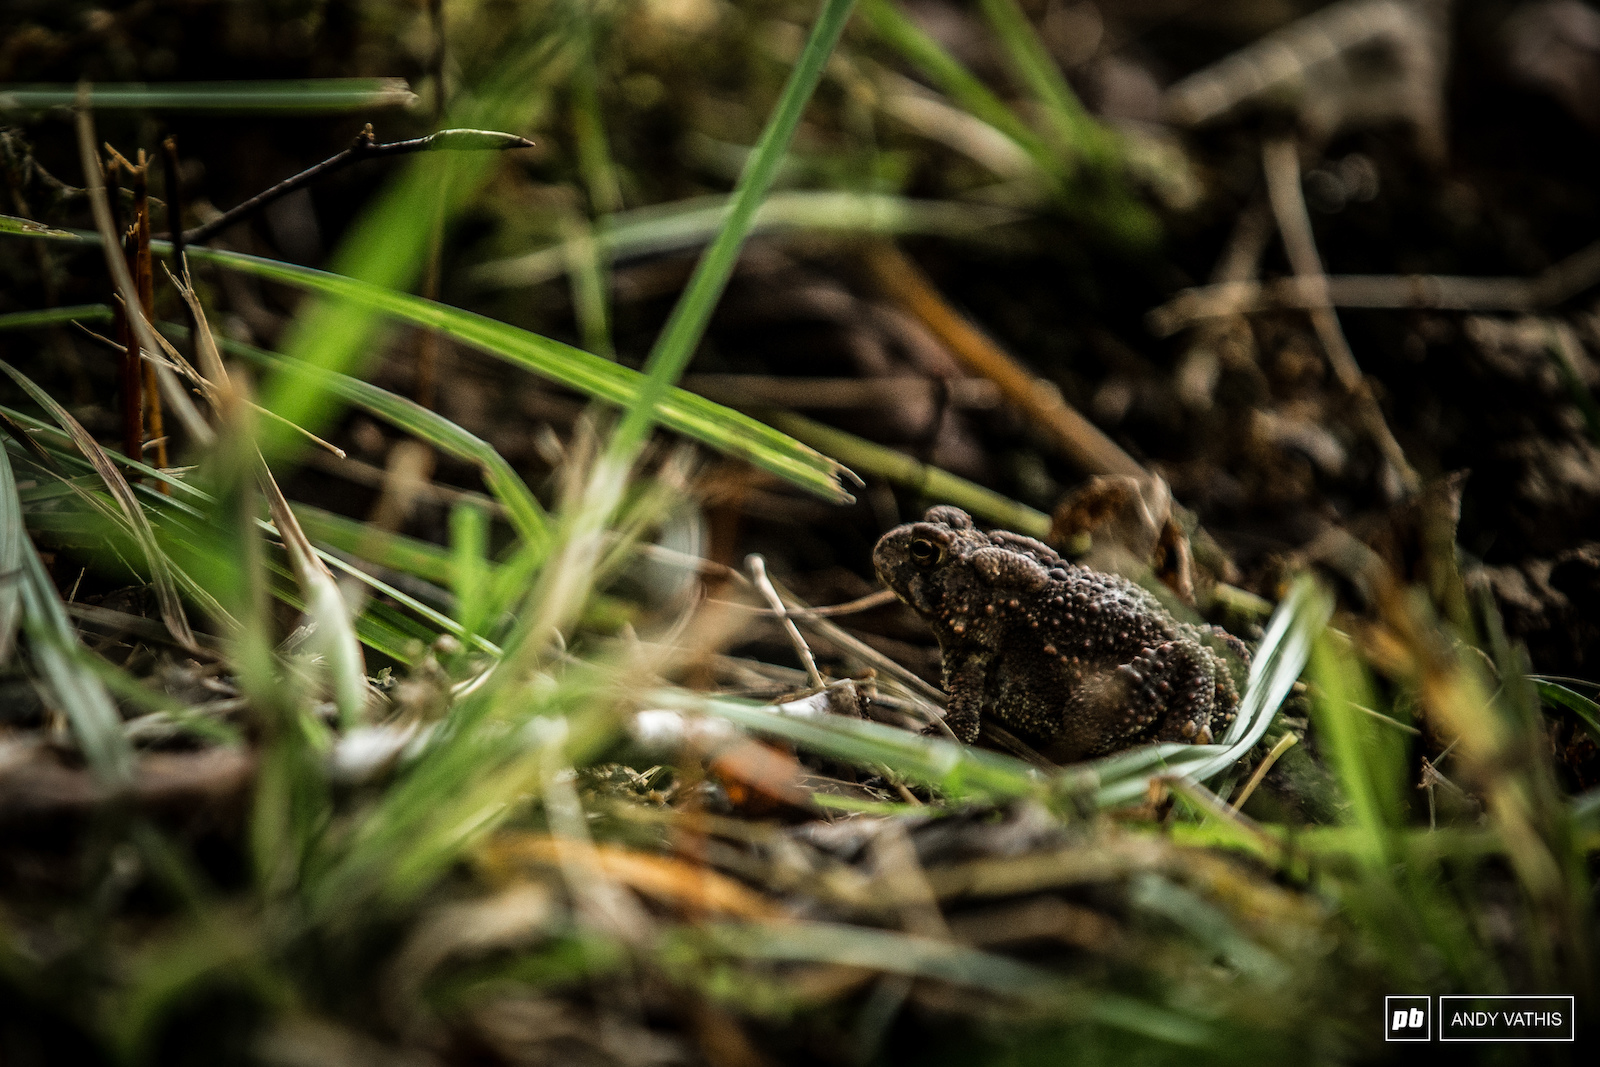 The toads came out to see what all the fuss is about in their neck of the woods.